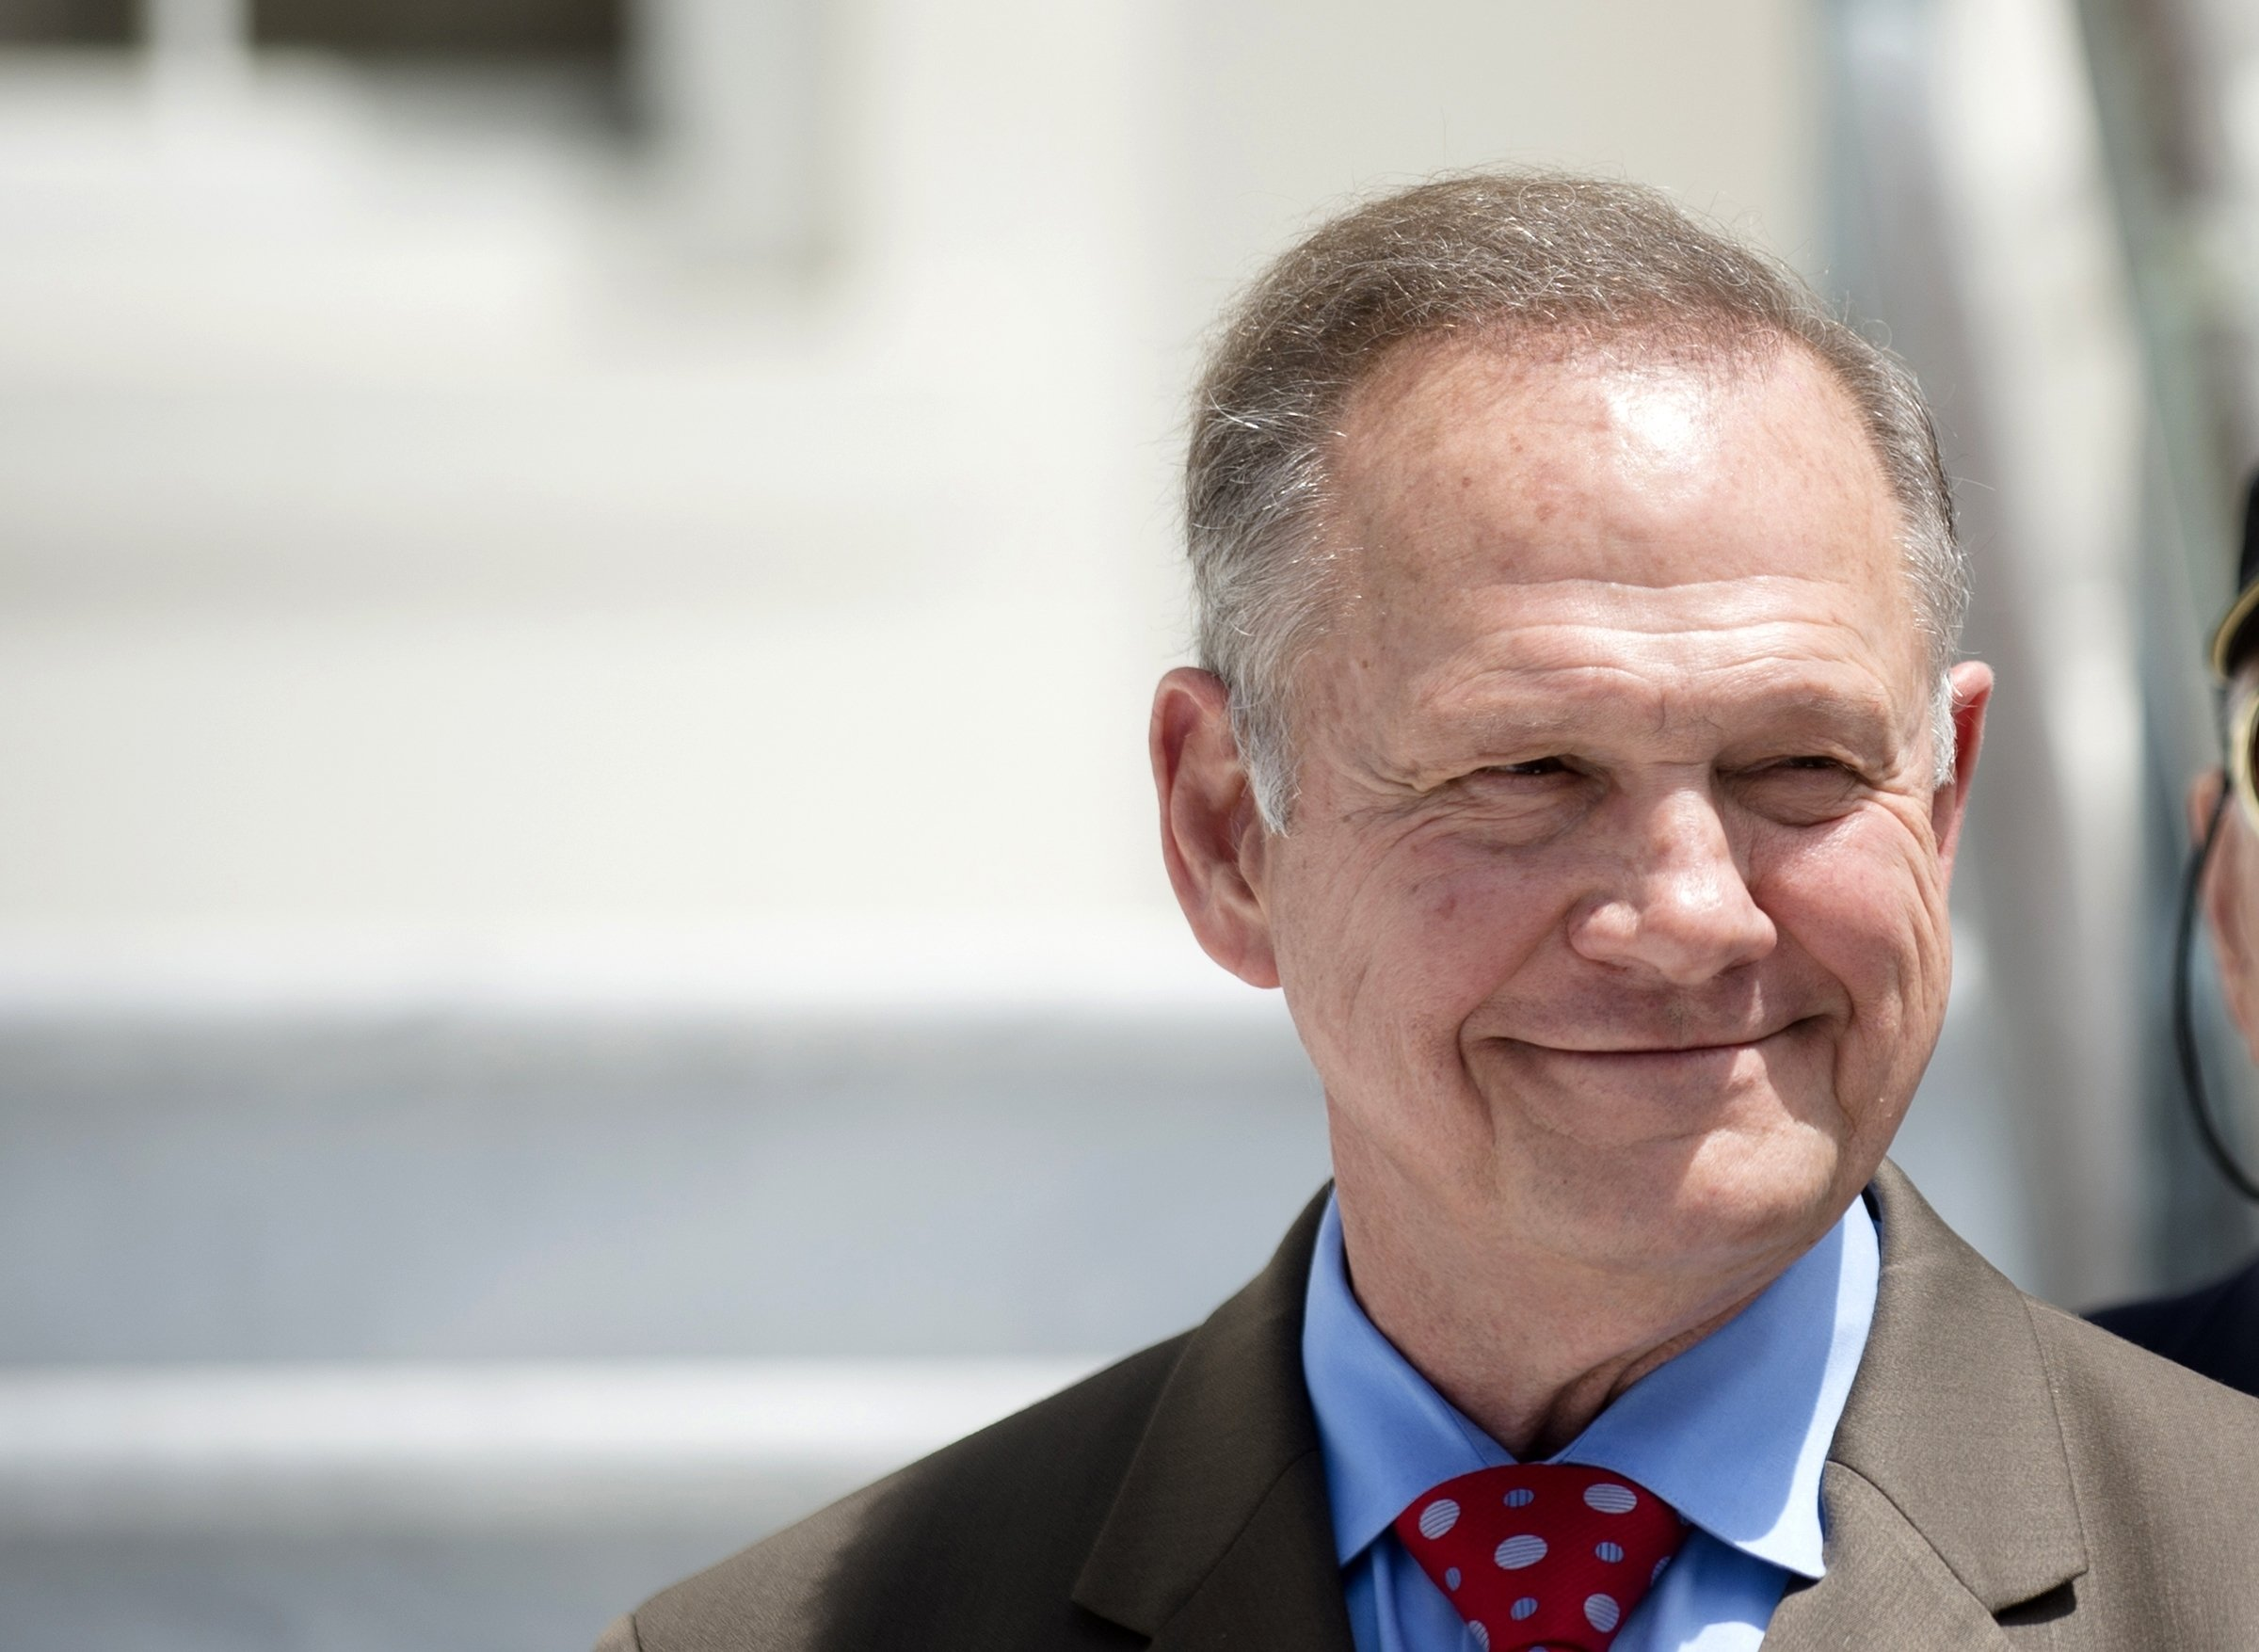 In Alabama Senate race, Roy Moore stirs far right base